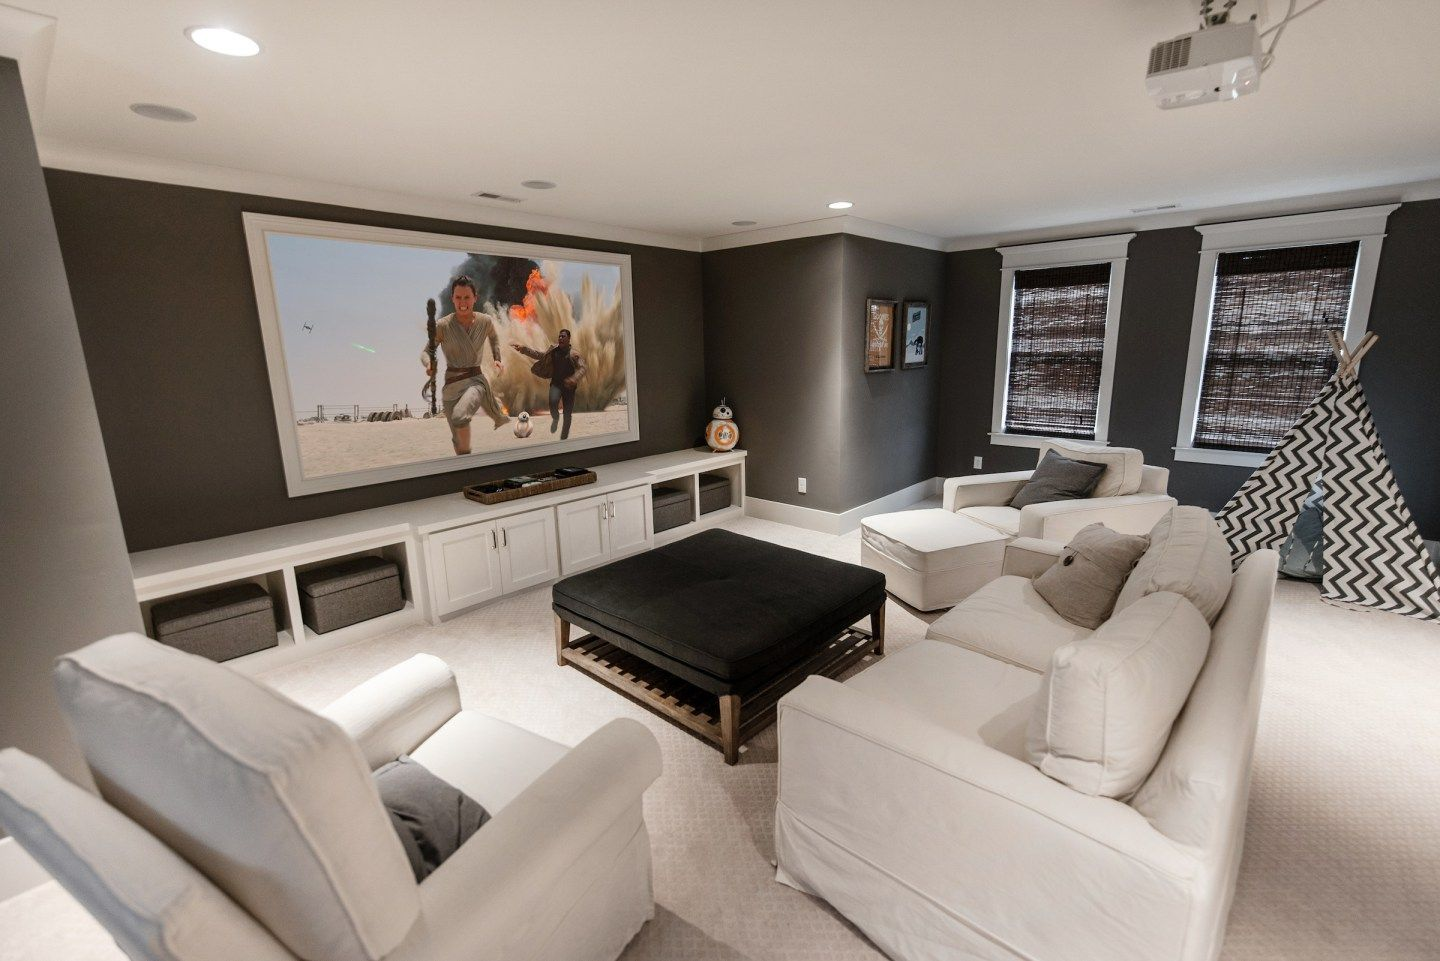 Creating A Home Theater In Your Personal On Budget Basement Wiring Room